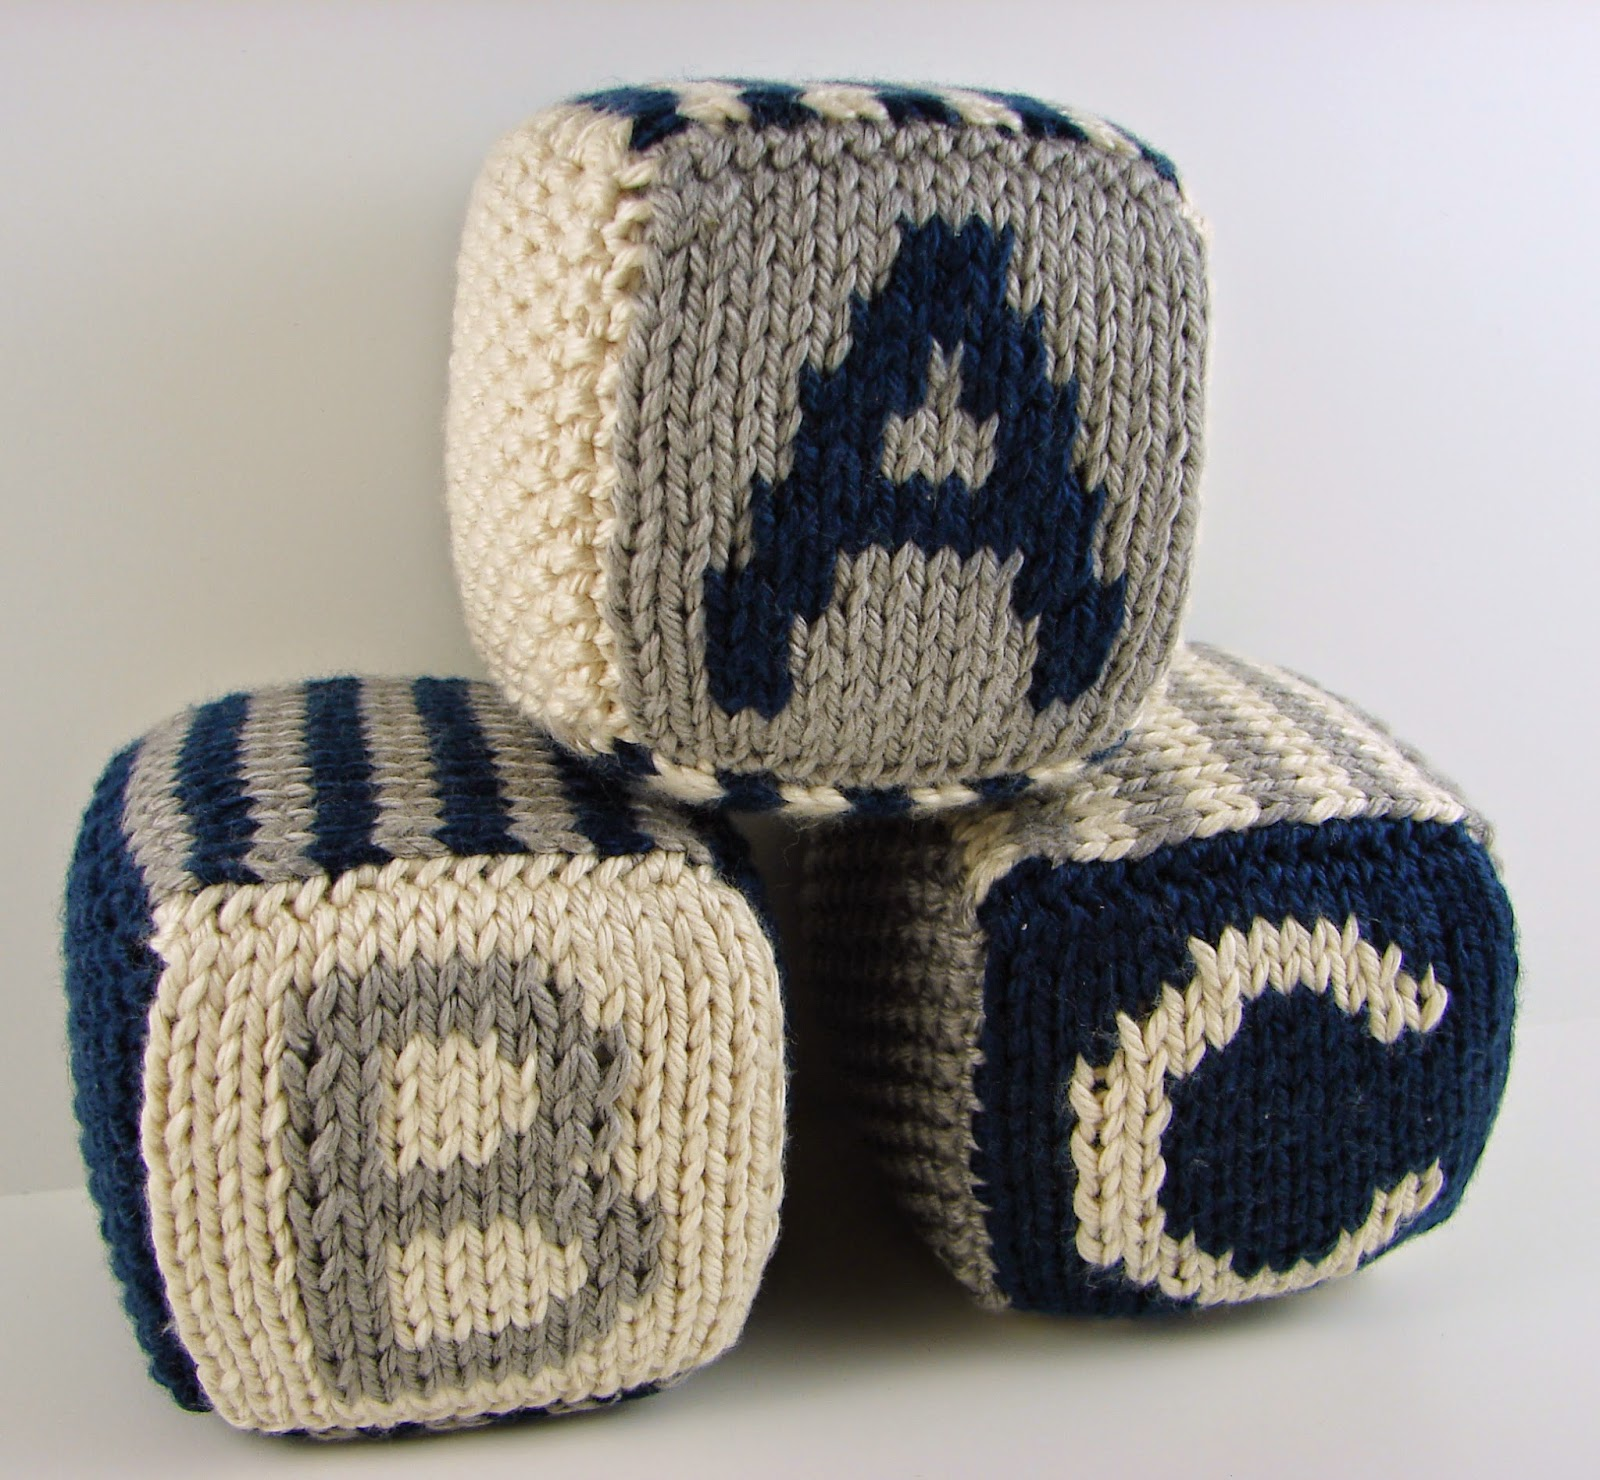 knit, blocks, foam, toys, hand knit, letter, number, striped, white, navy blue, gray